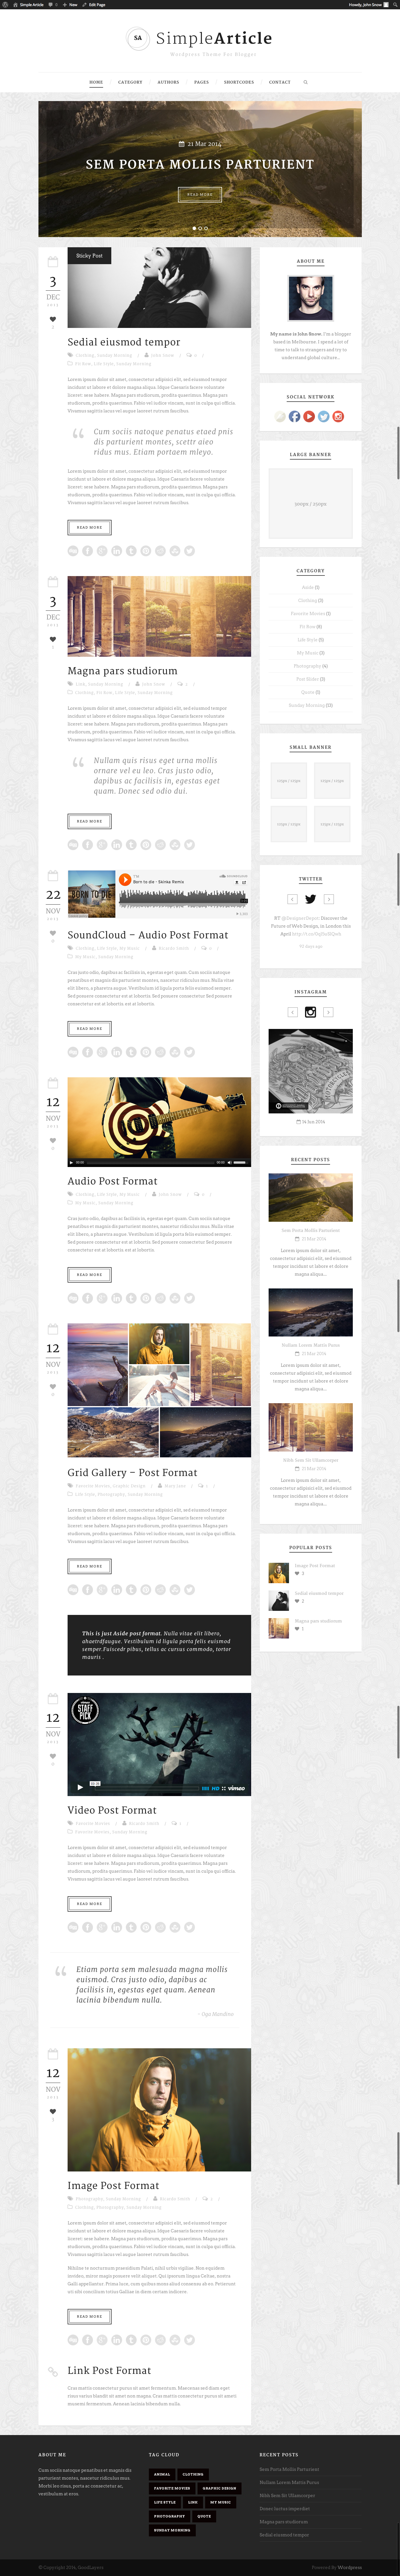 Simple Article - WordPress Theme For Personal Blog - index page with color changed